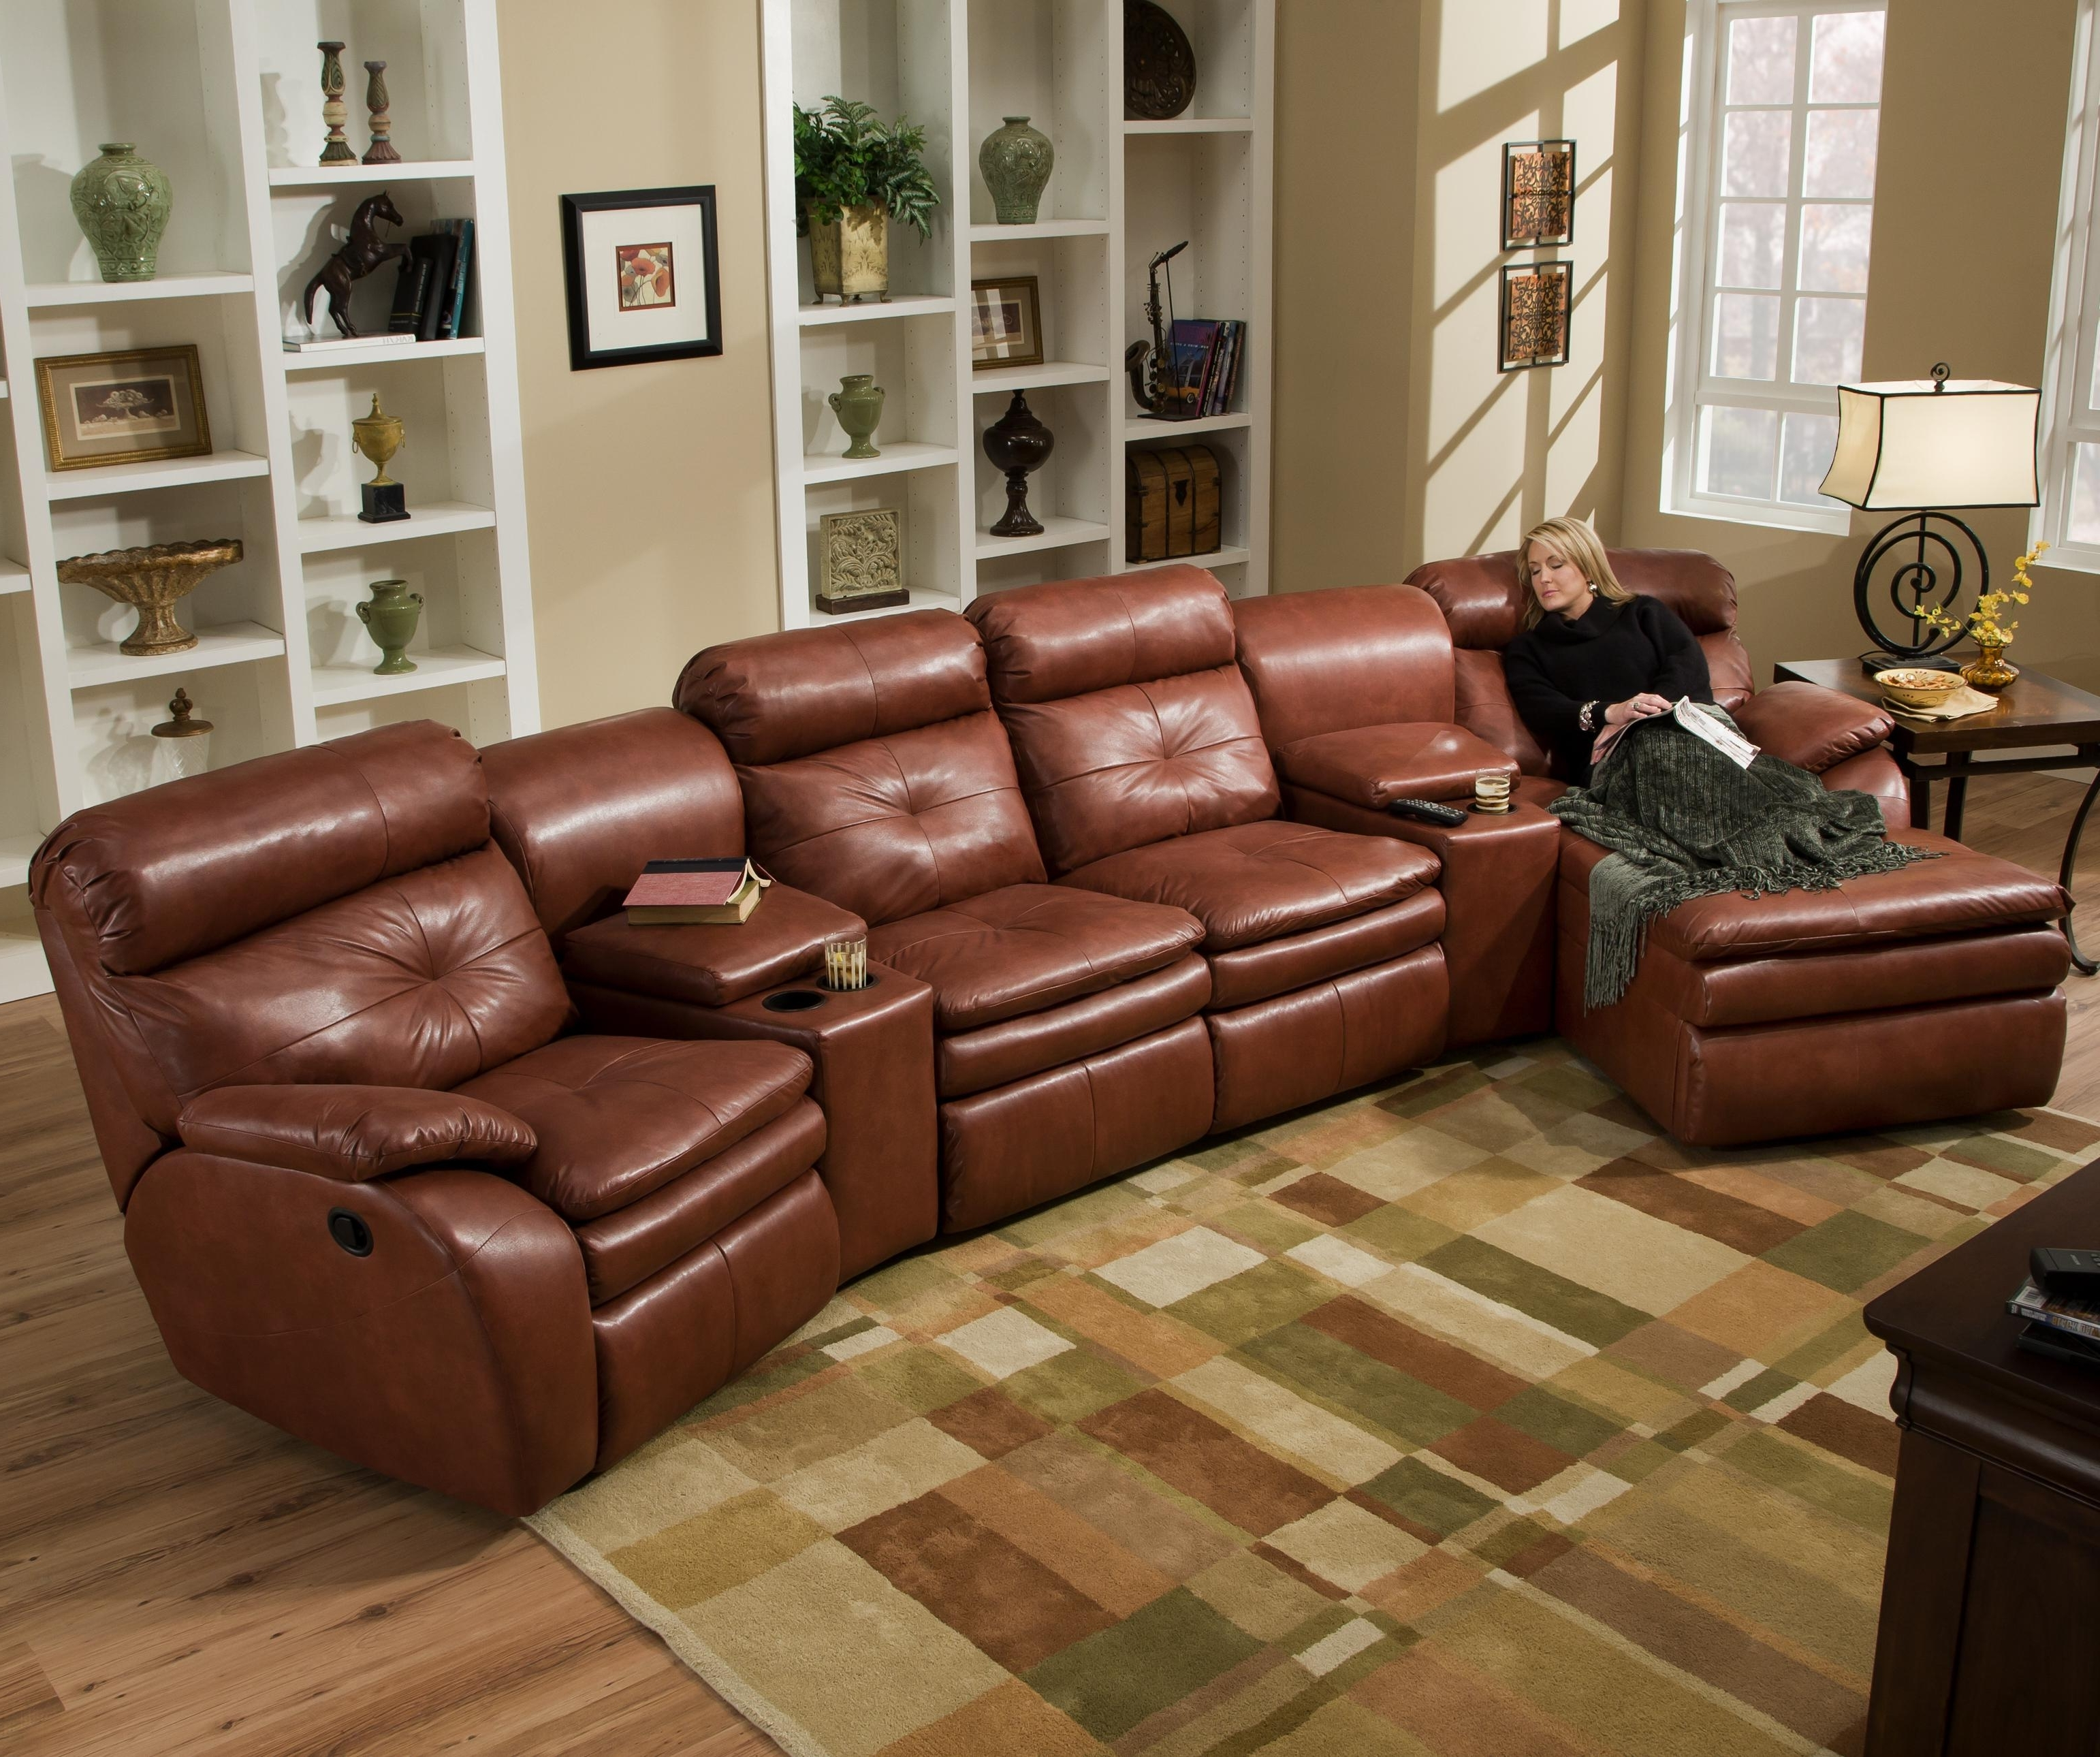 Most Popular Ashley Furniture Sectional Couch Small Sectional Sofa Bed Small Throughout Couches With Chaise And Recliner (View 9 of 15)